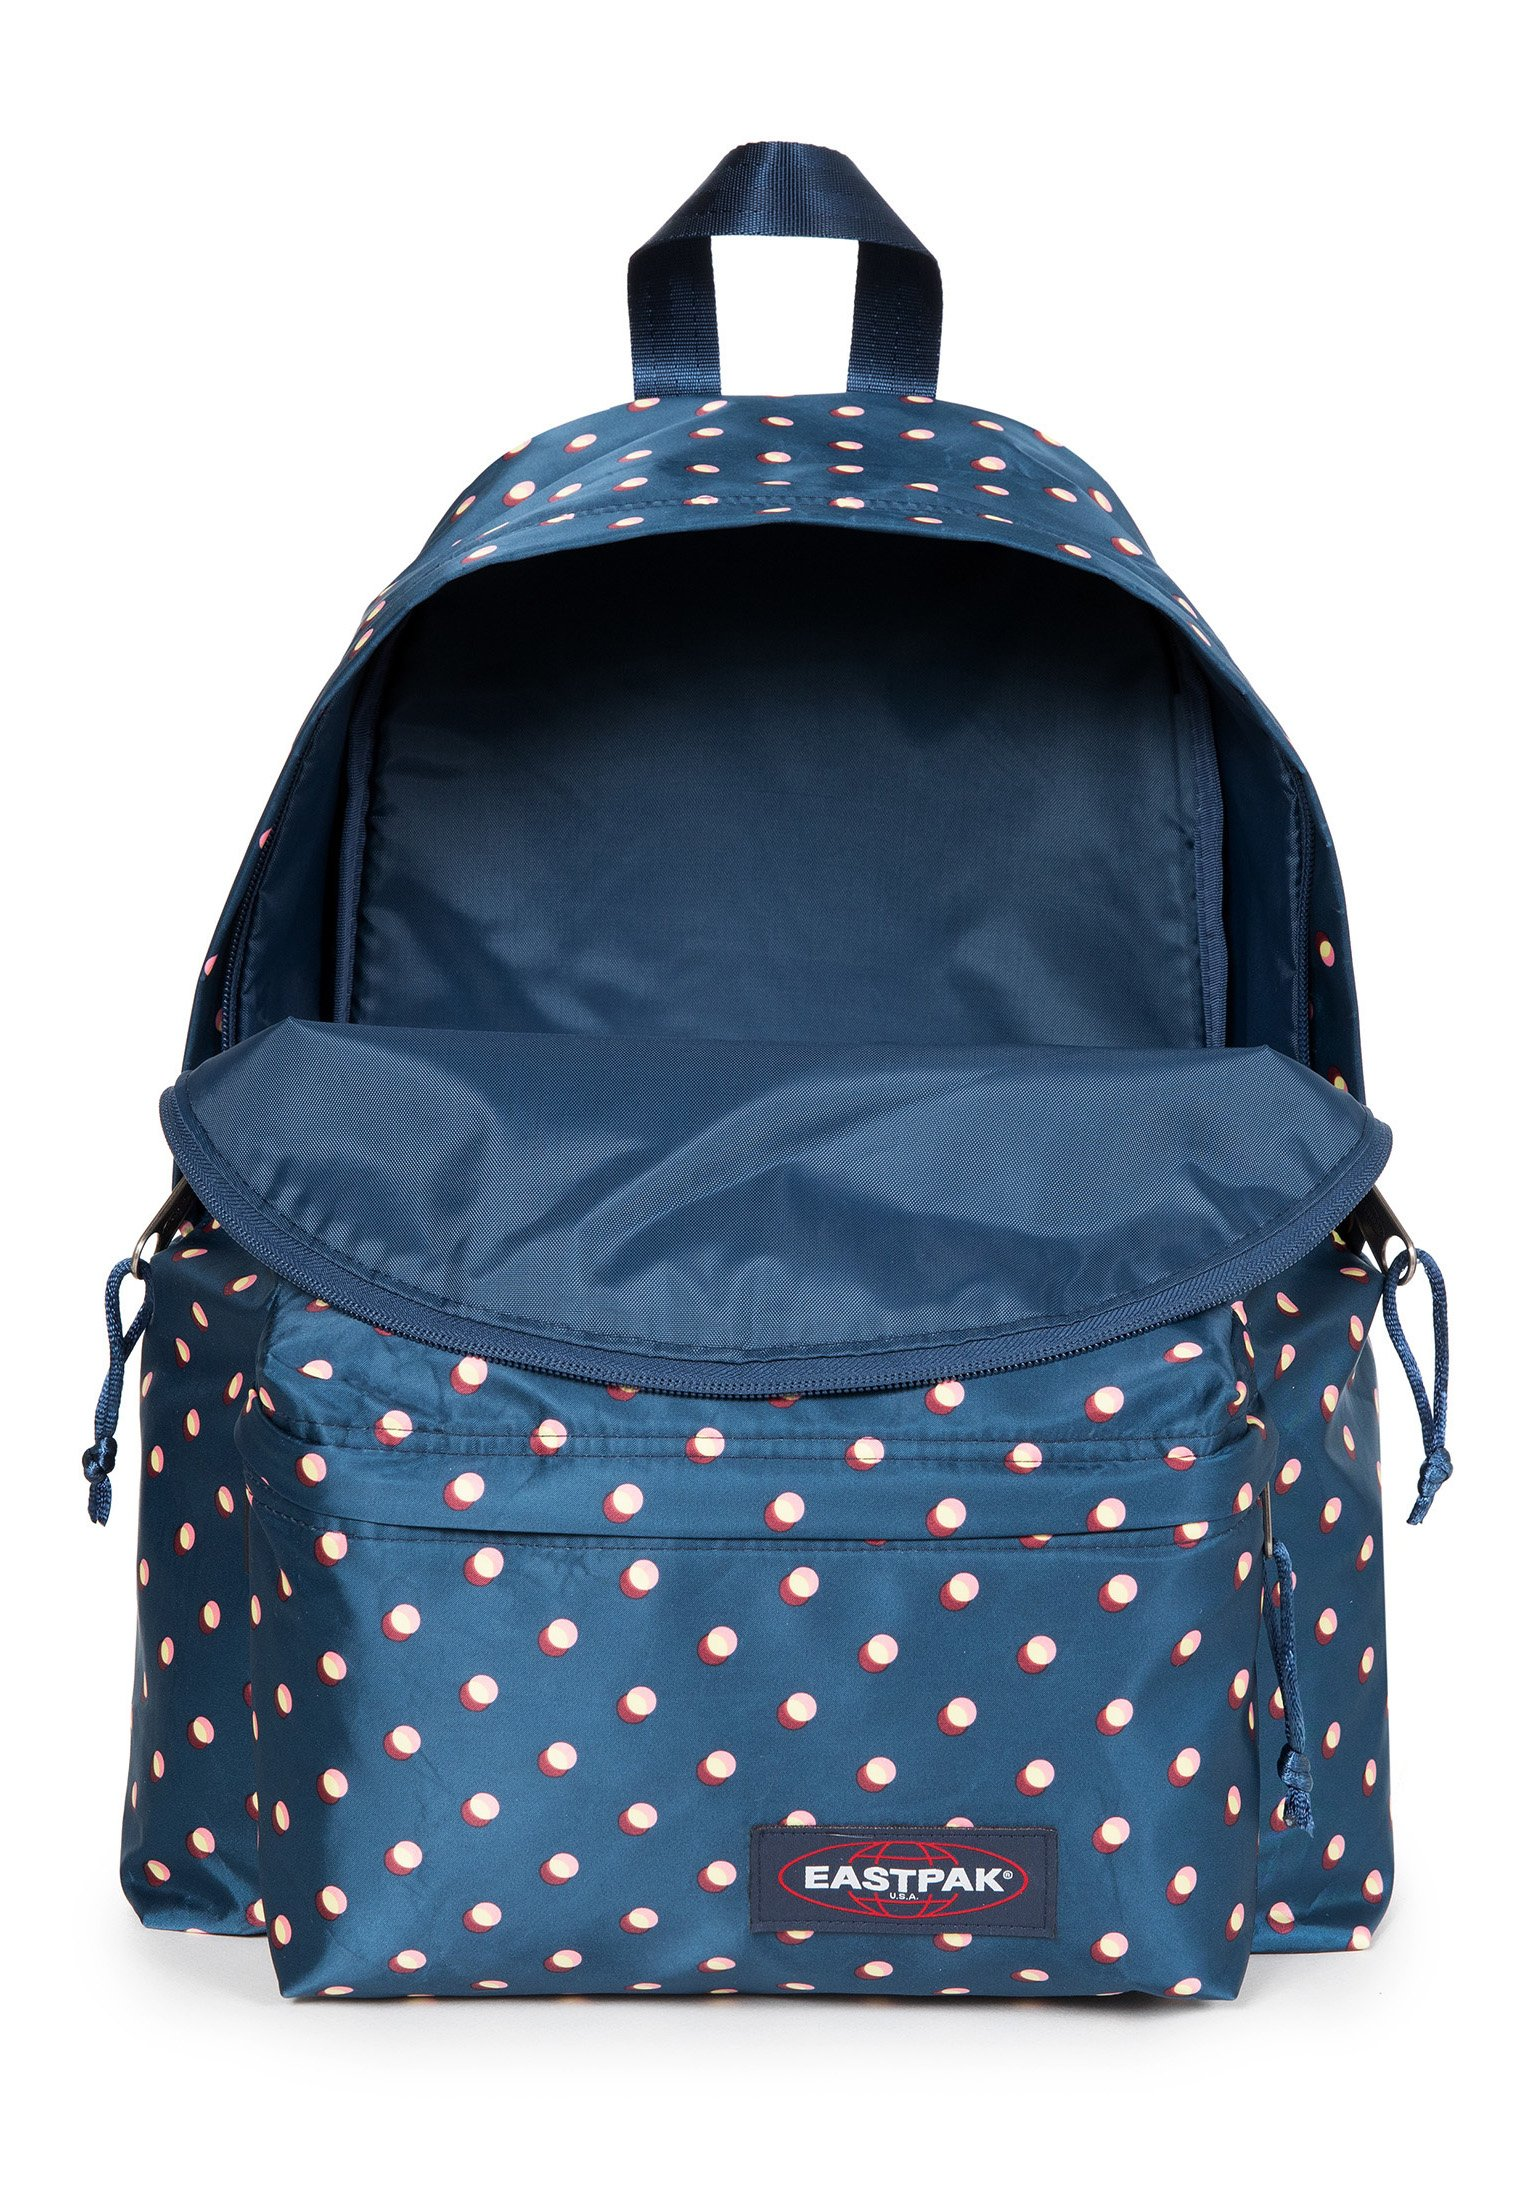 Up To Date Outlet Eastpak PADDED - Rucksack - luxe dots | men's accessories 2020 mDybh